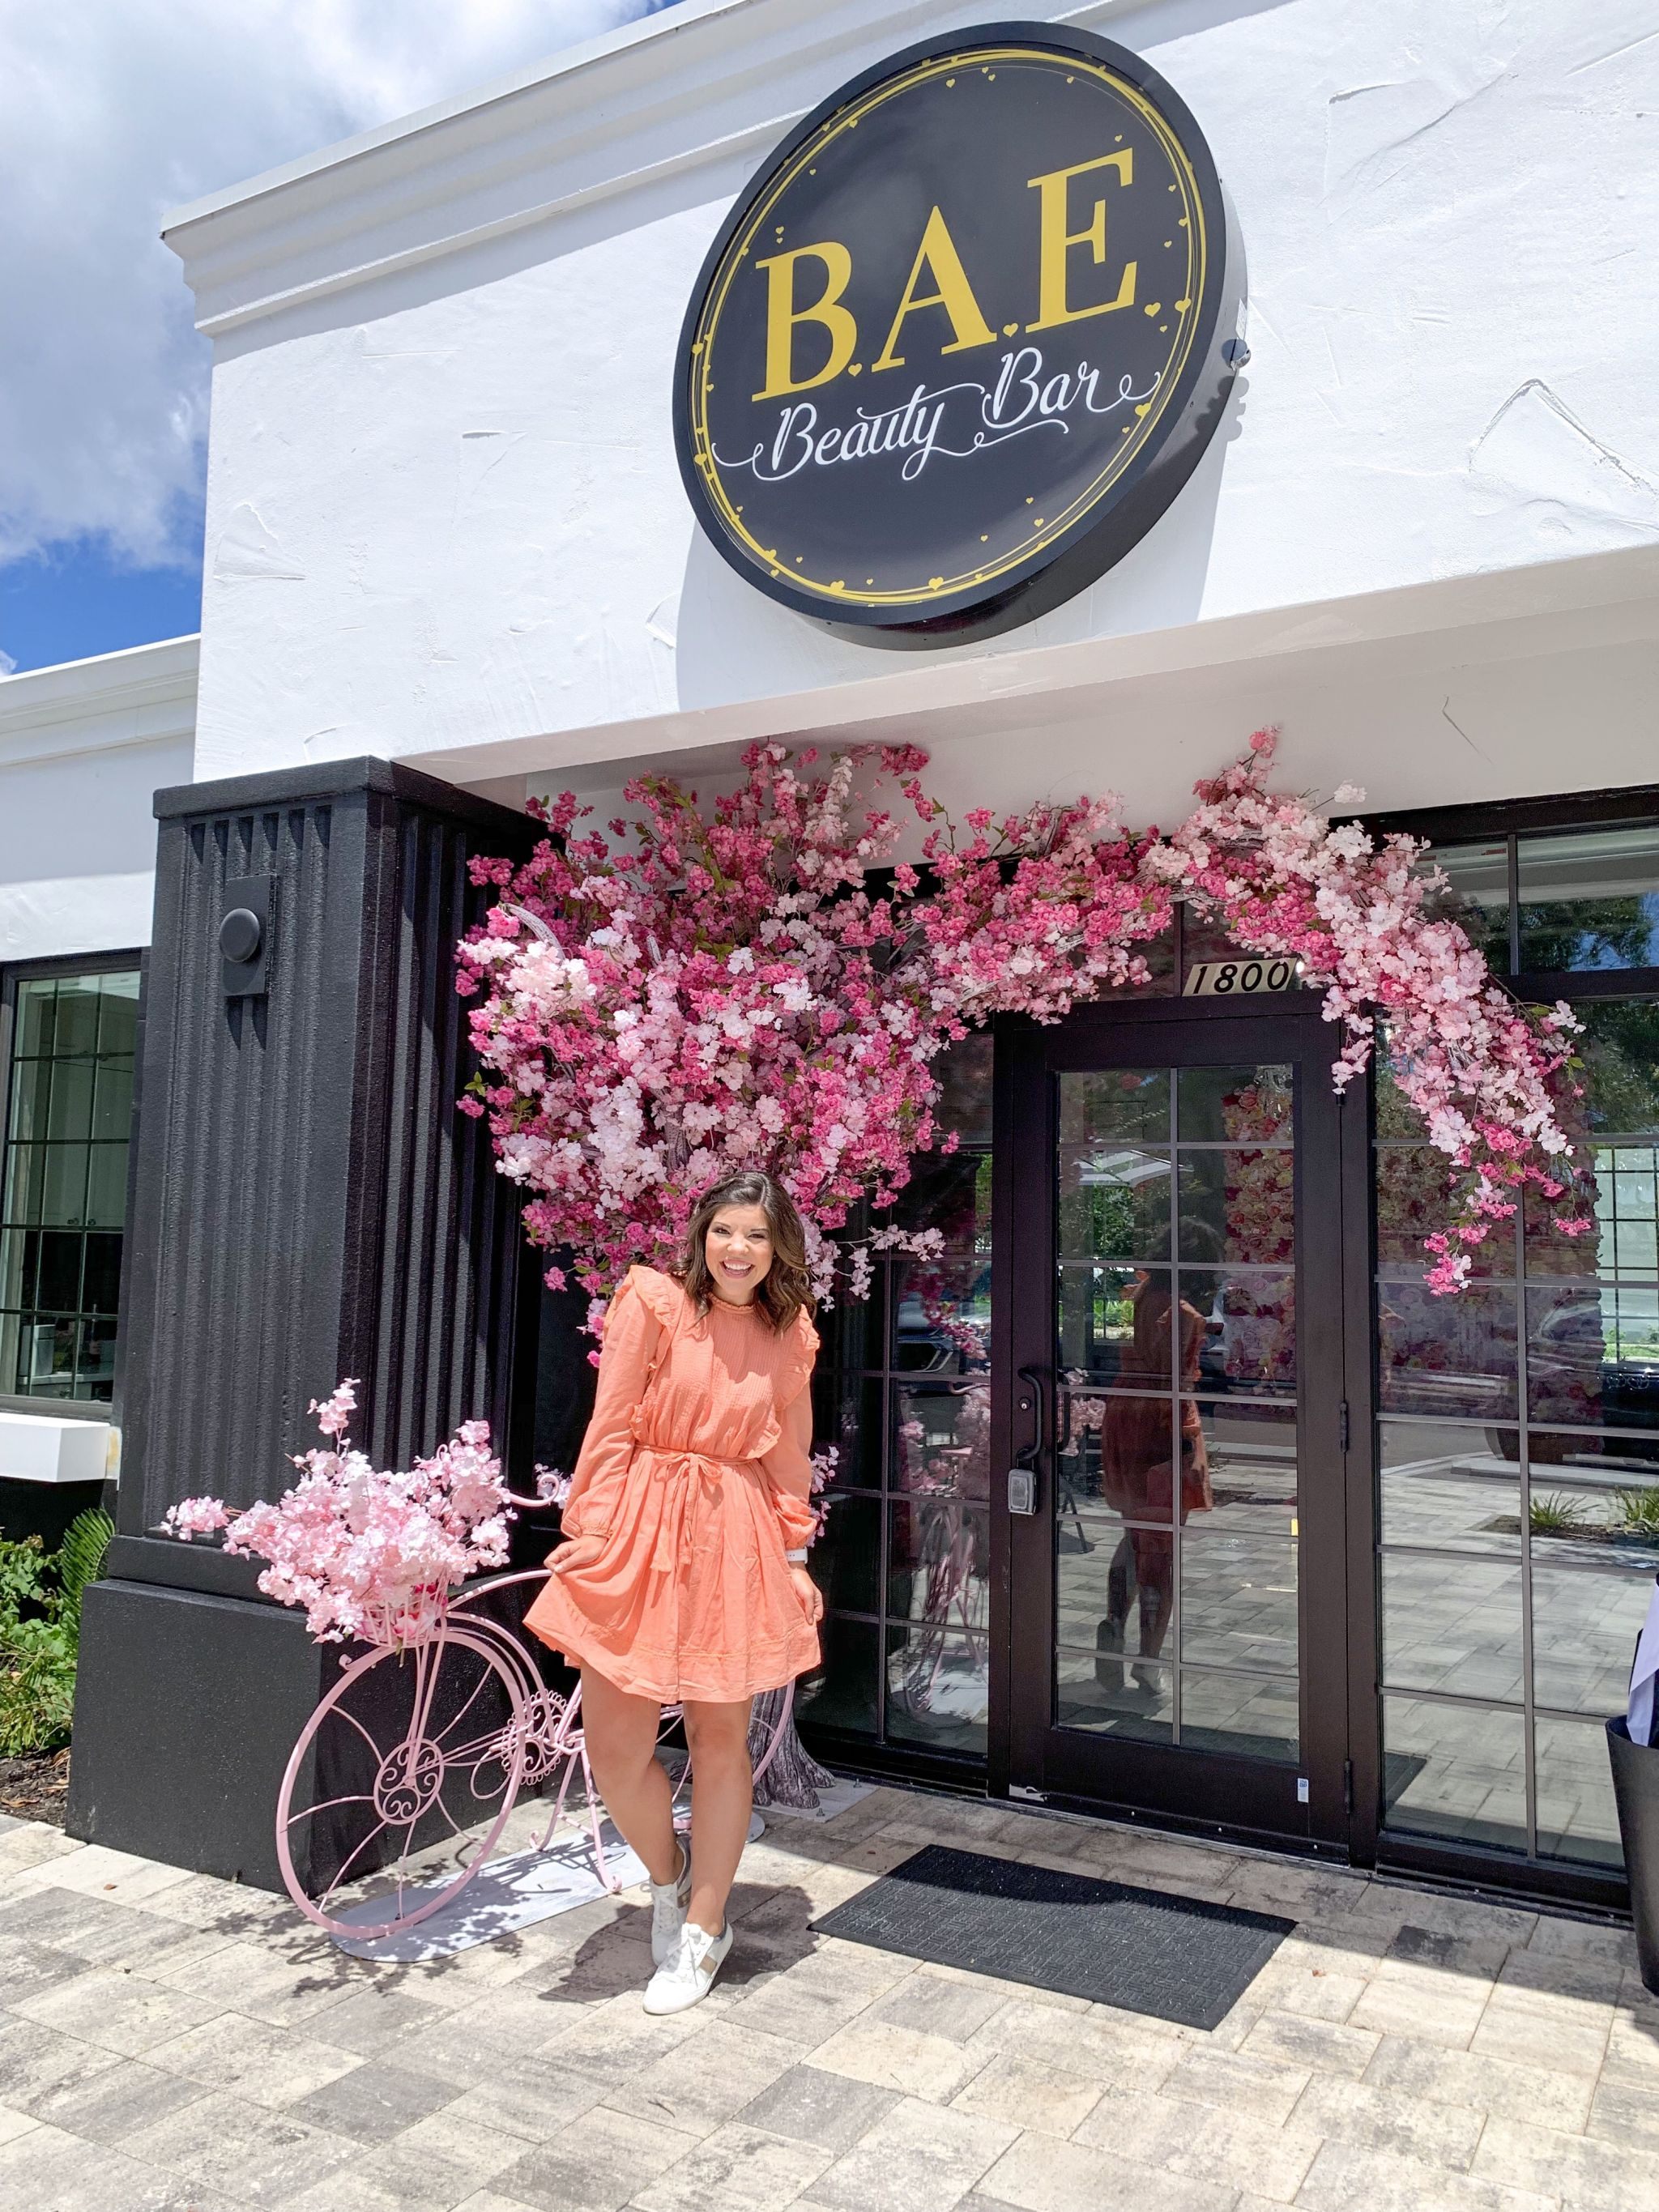 A Girly Afternoon at B.A.E. Beauty Bar